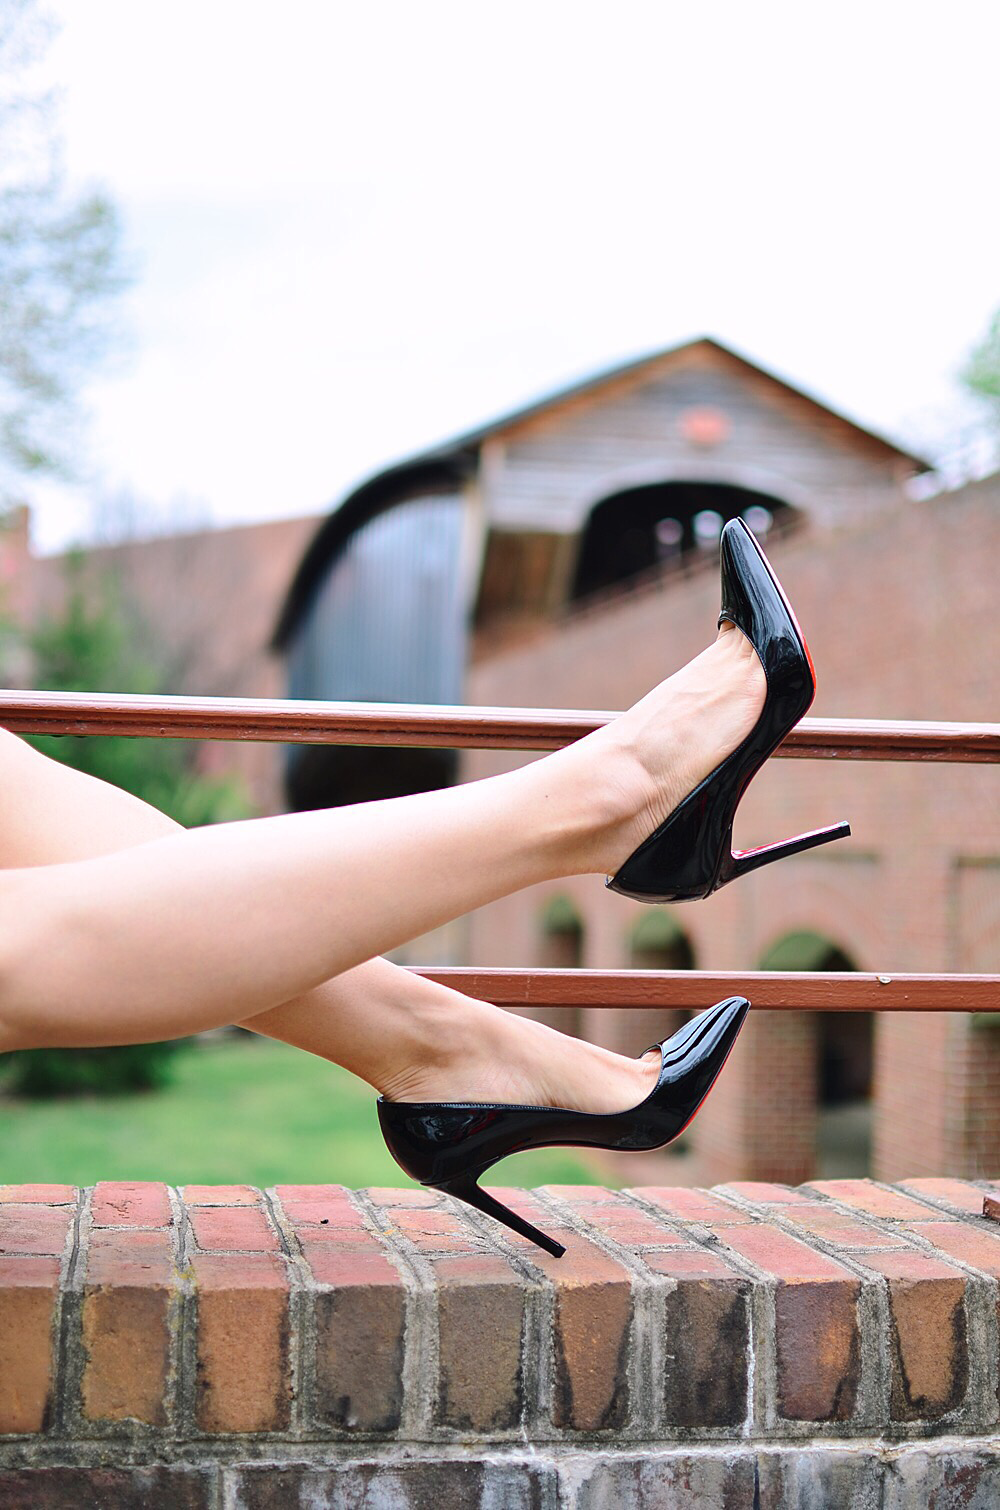 Wearing Louboutin Pigalle Pumps